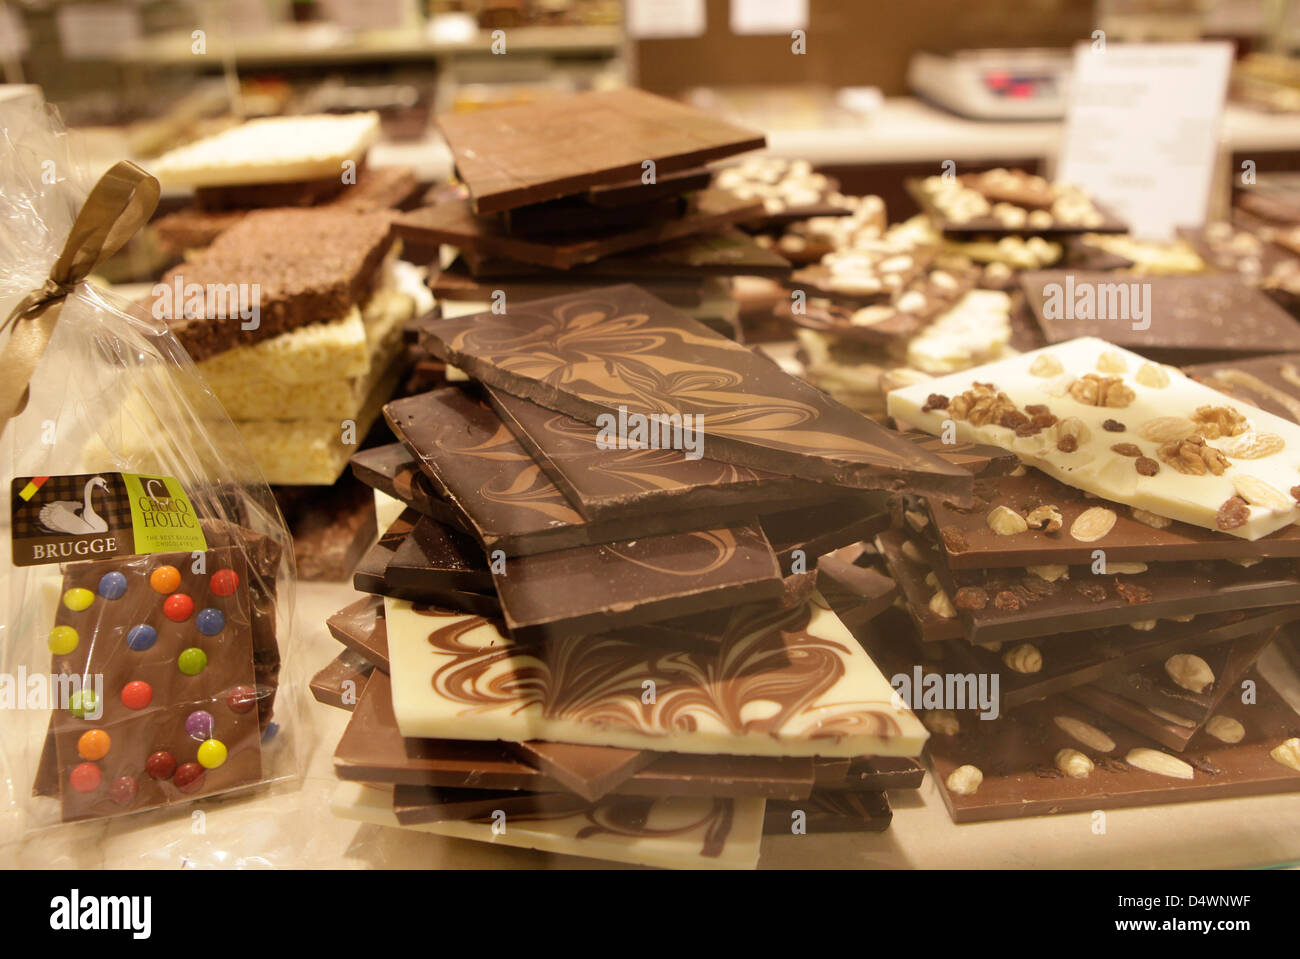 ASSORTED CHOCOLATE PIECES FOR SALE IN A BELGIAN CHOCOLATE STORE, brugge, belgium - Stock Image